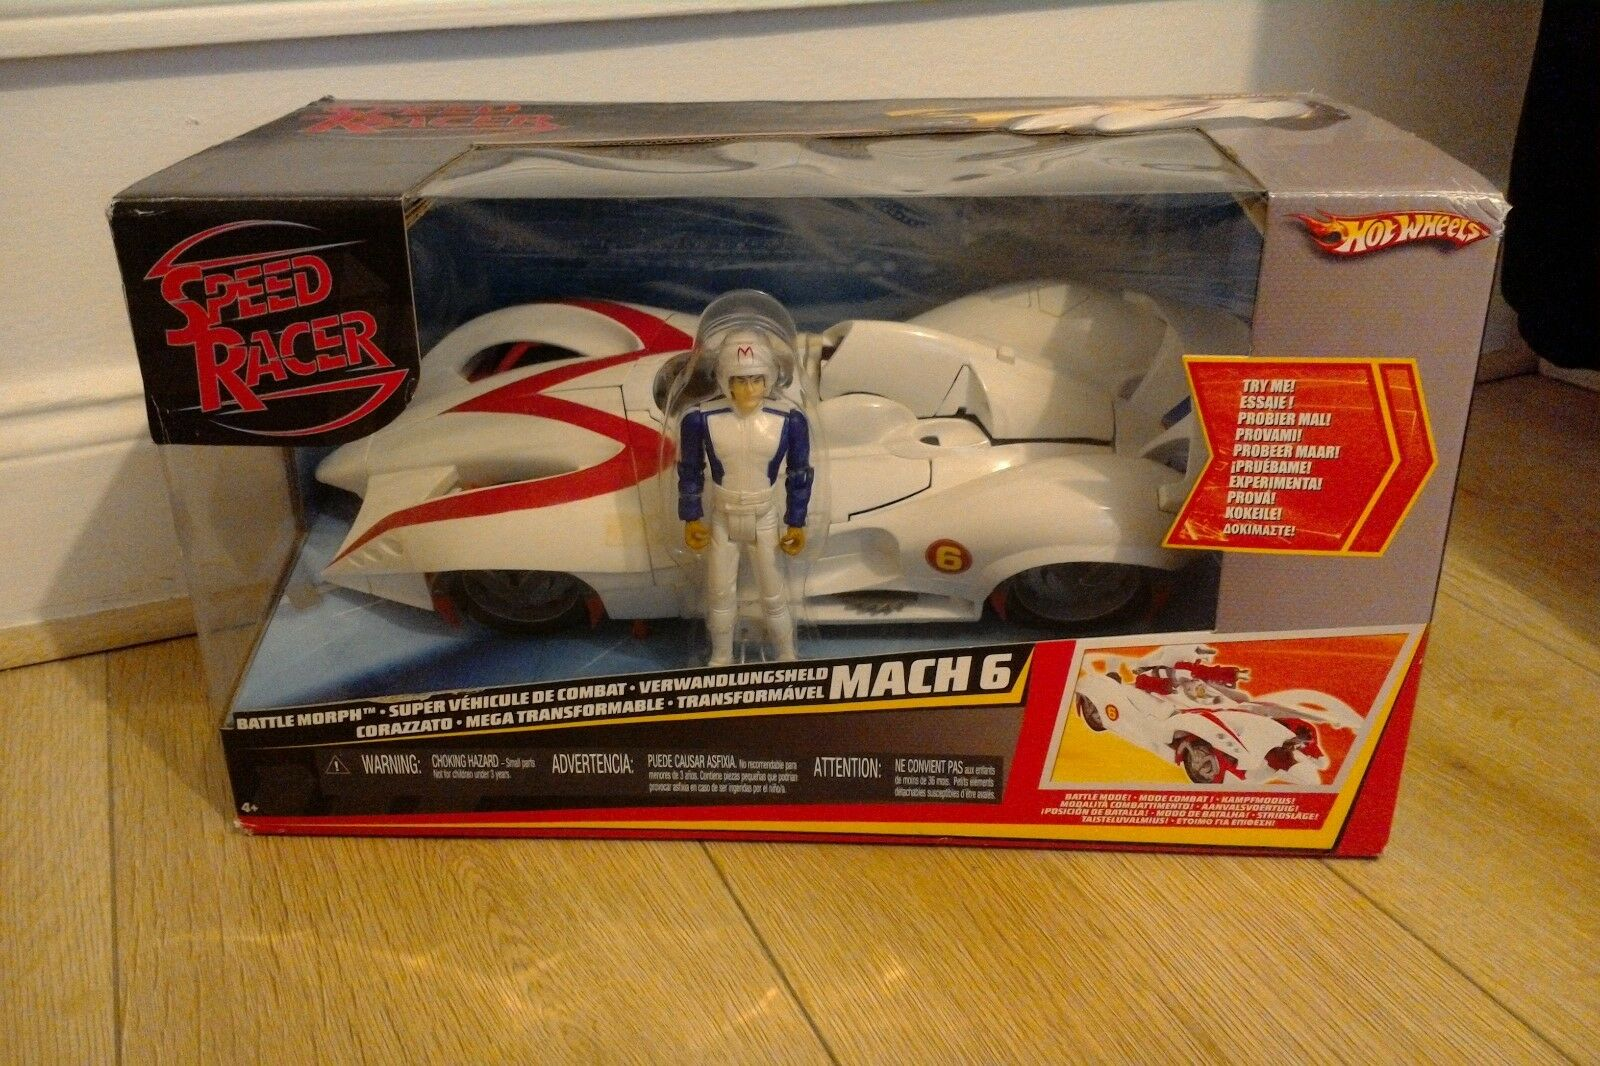 Hot Wheels Speed Racer Mach 6 6 6 184432